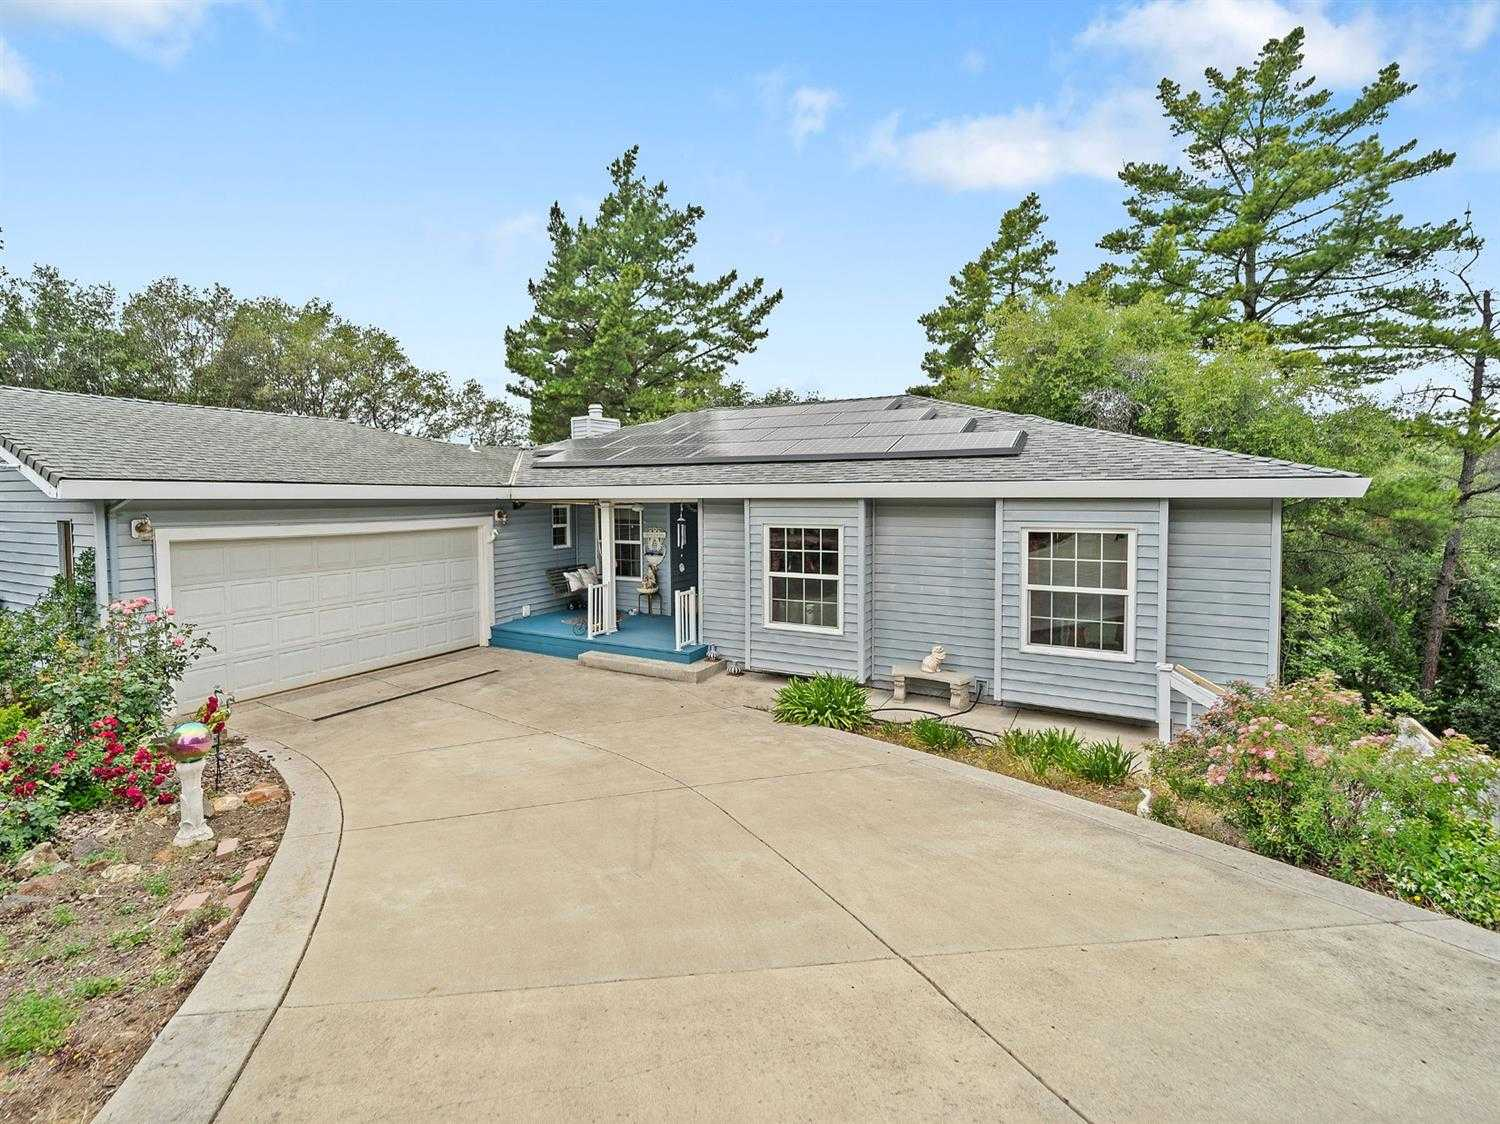 $440,000 - 3Br/2Ba -  for Sale in Cameron Park